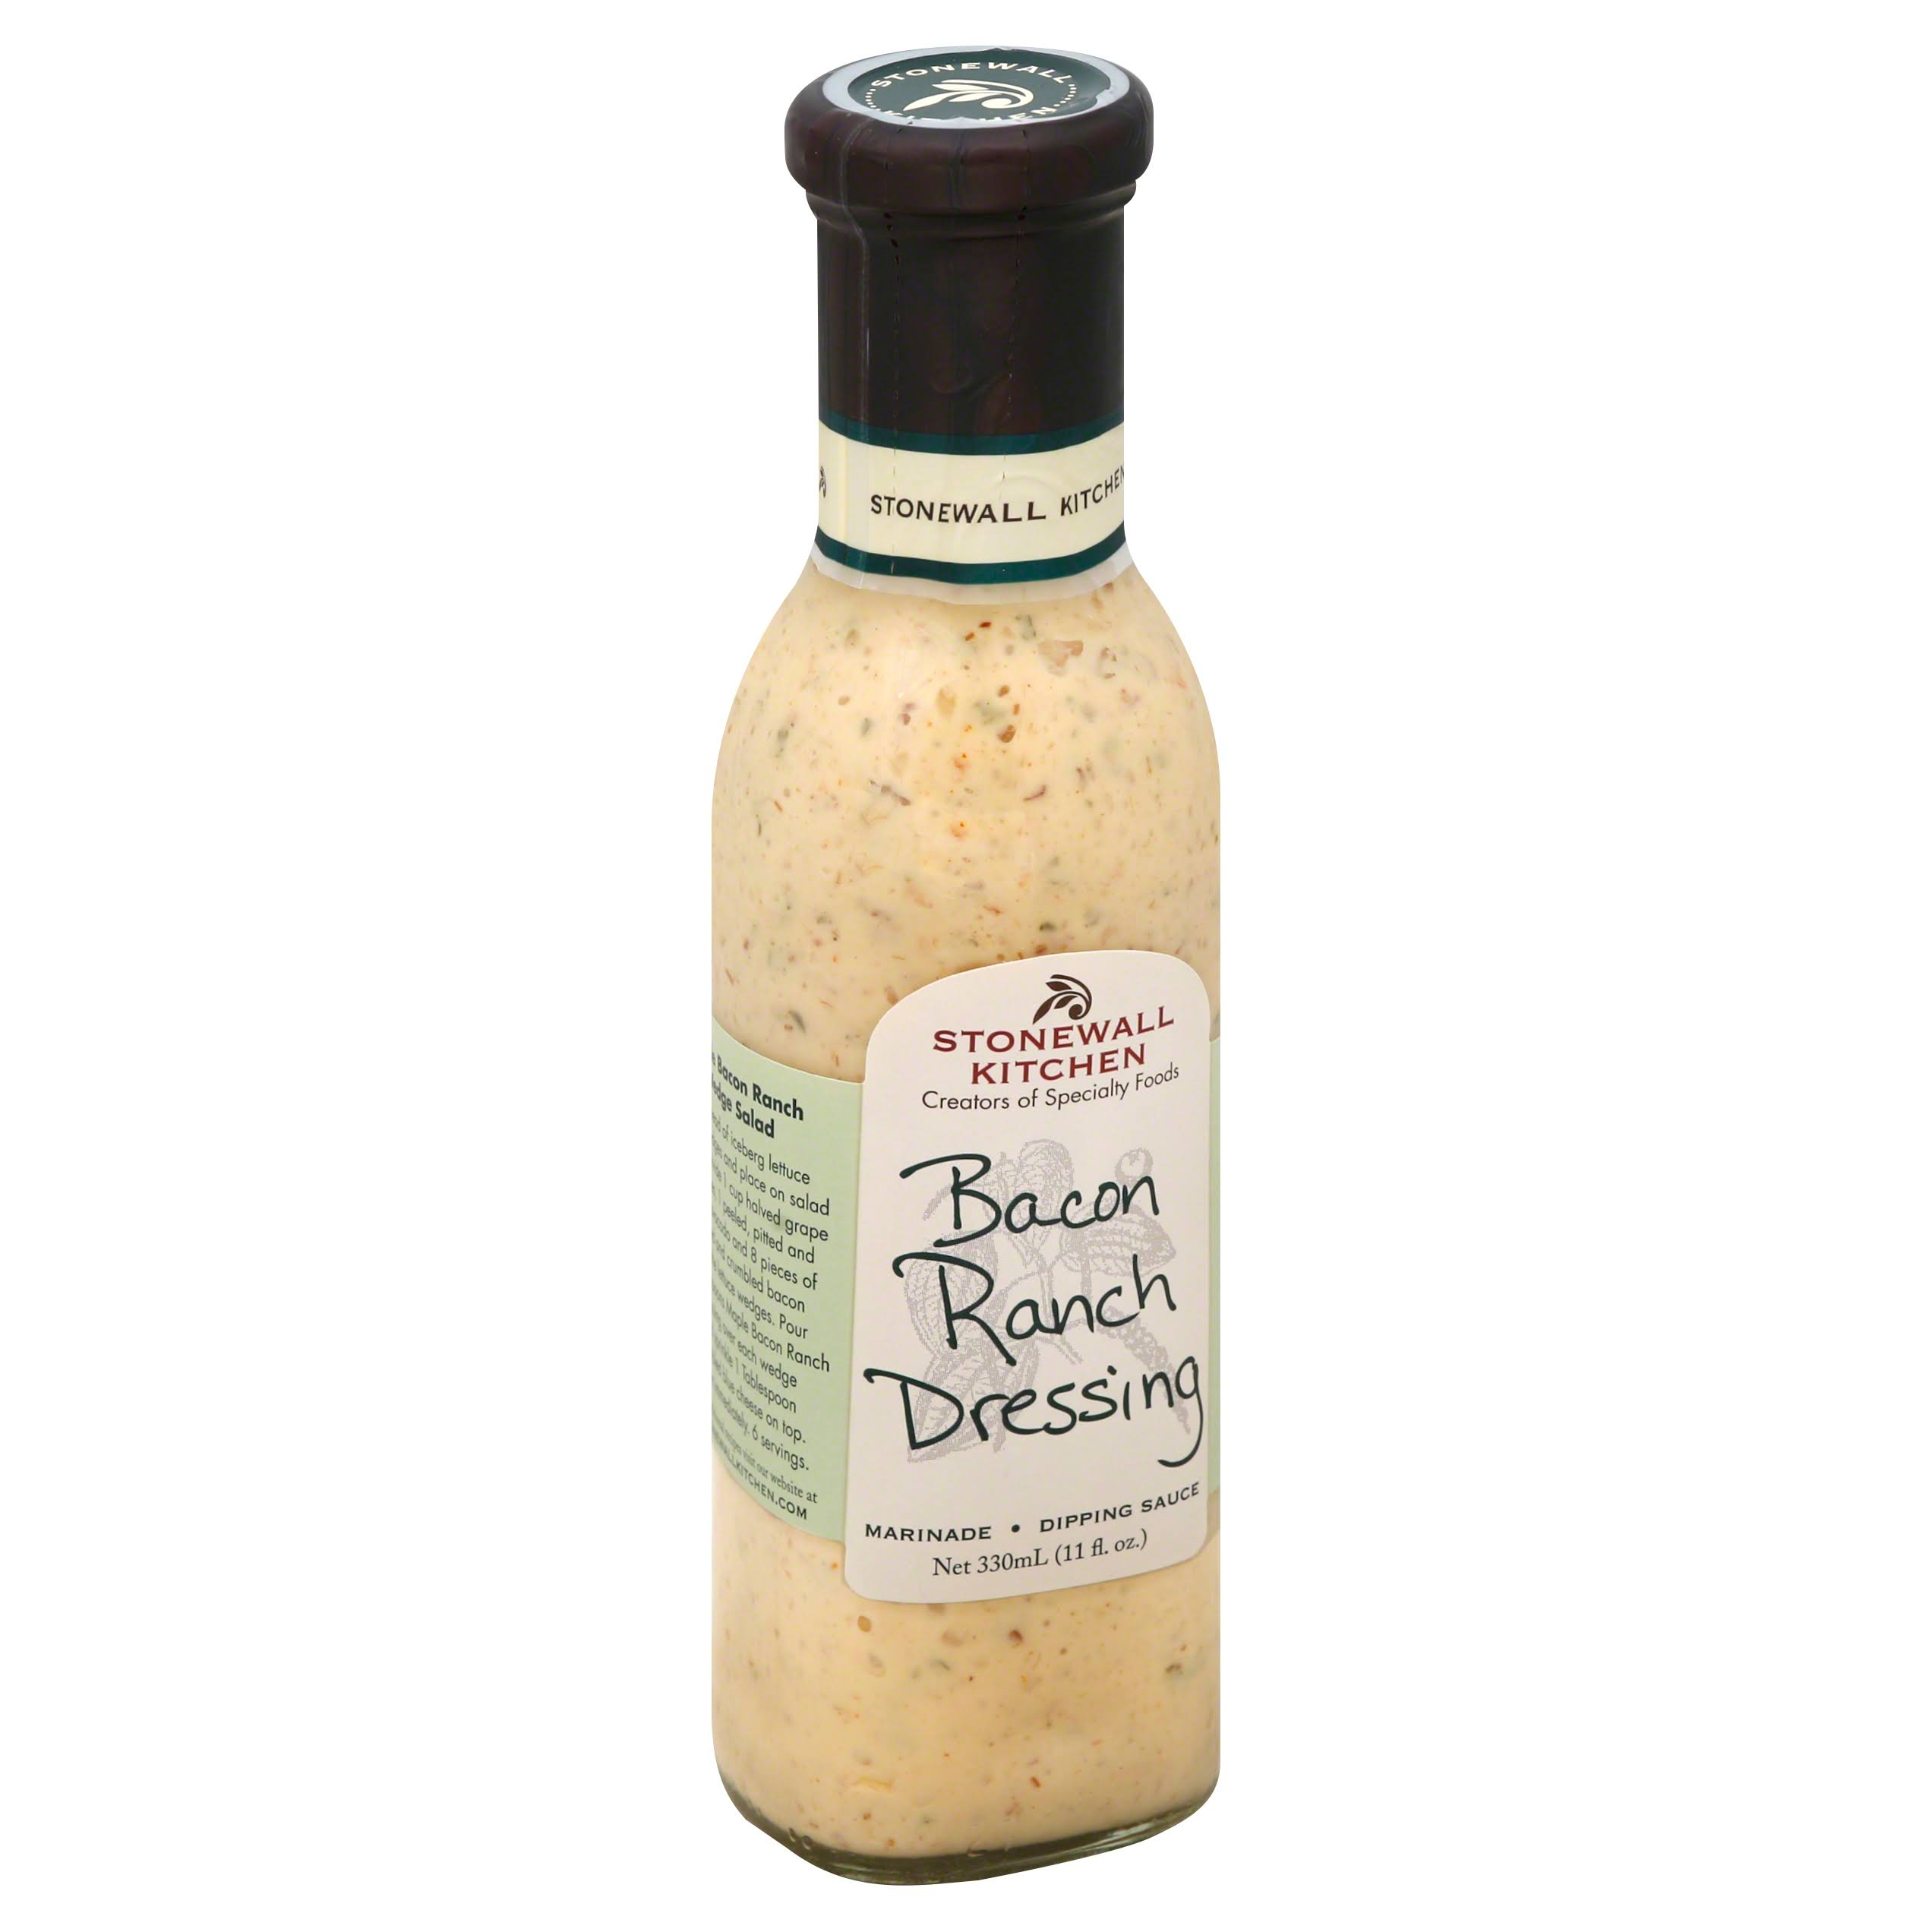 Stonewall Kitchen Dressing - 330ml, Bacon Ranch